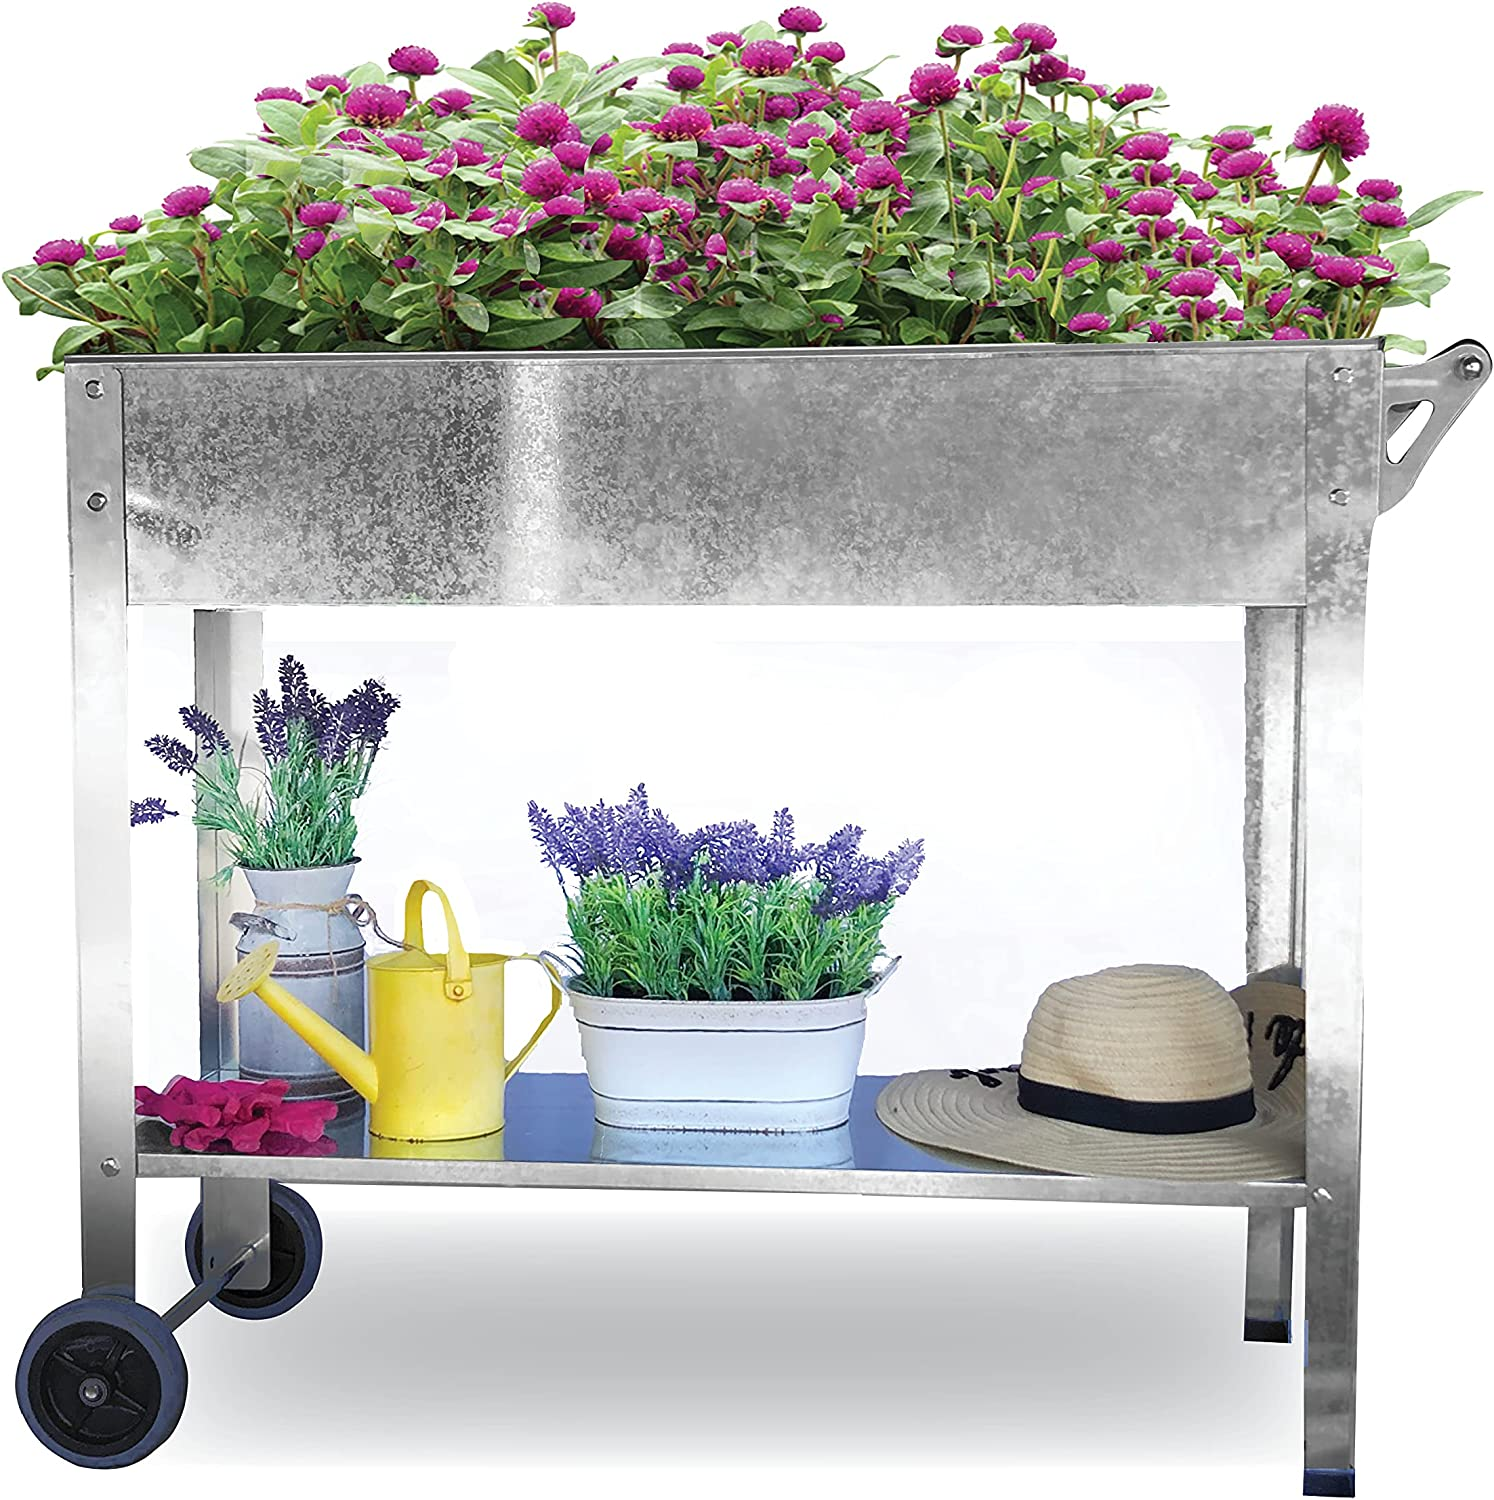 BACKYARD EXPRESSIONS PATIO · HOME · GARDEN 911215 Mobile Raised Bed, Grey